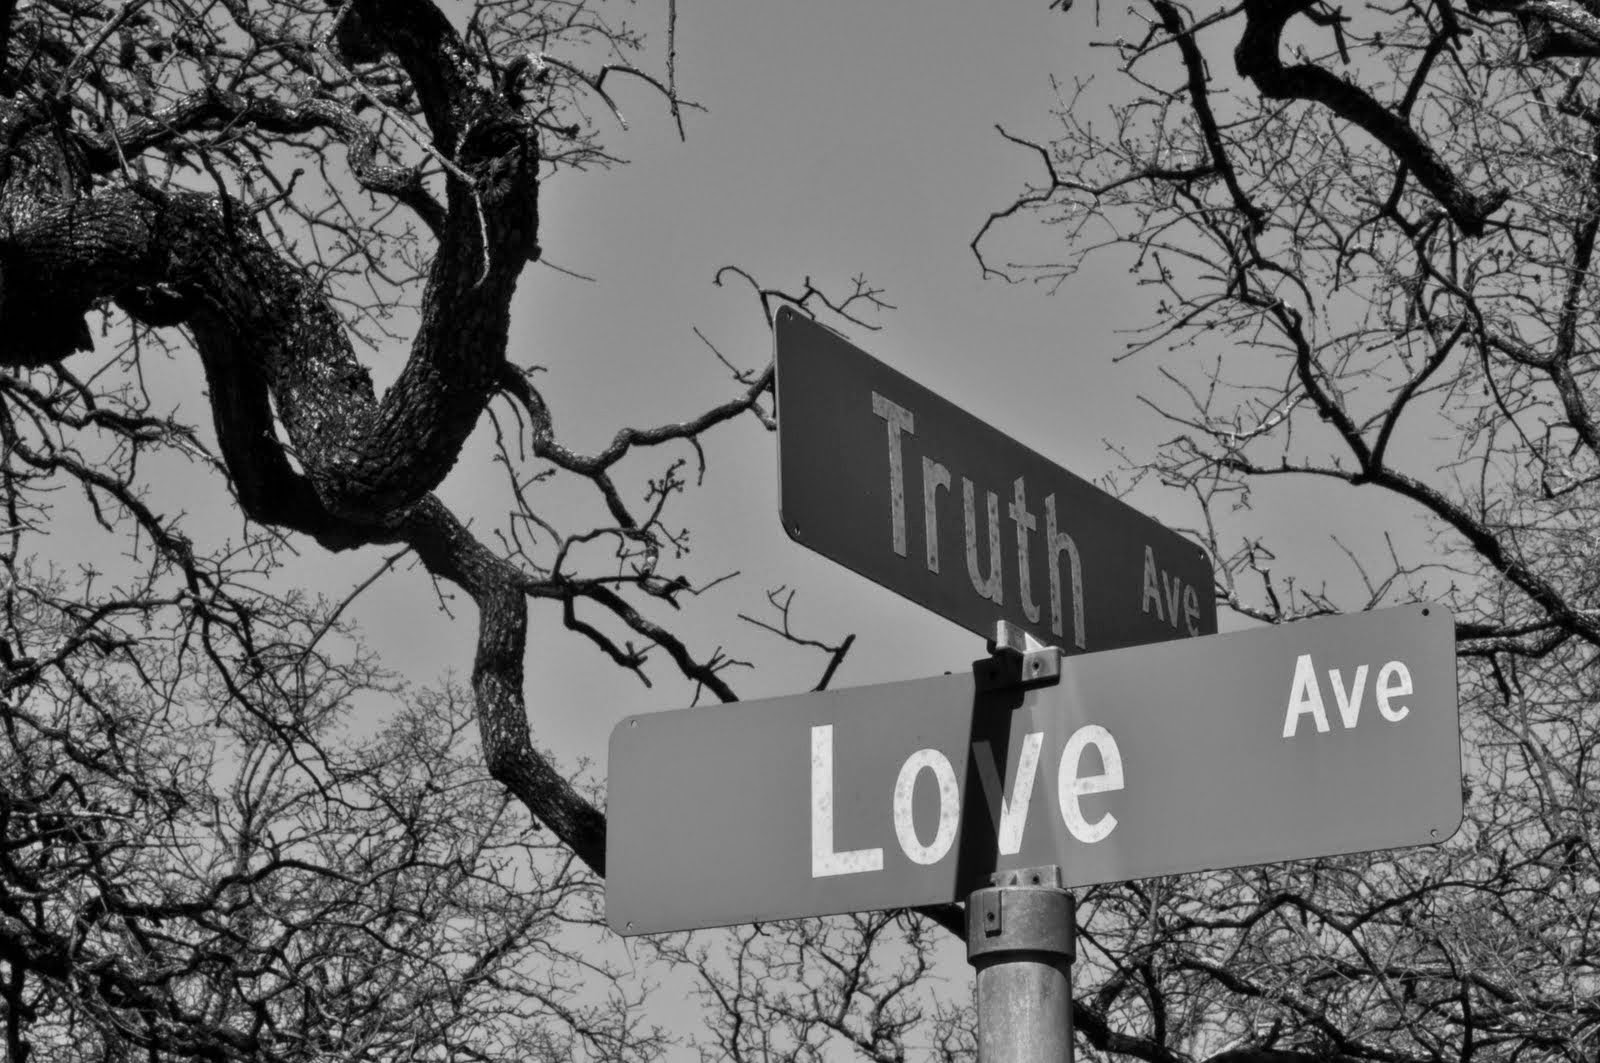 Corner of Truth & Love Ave